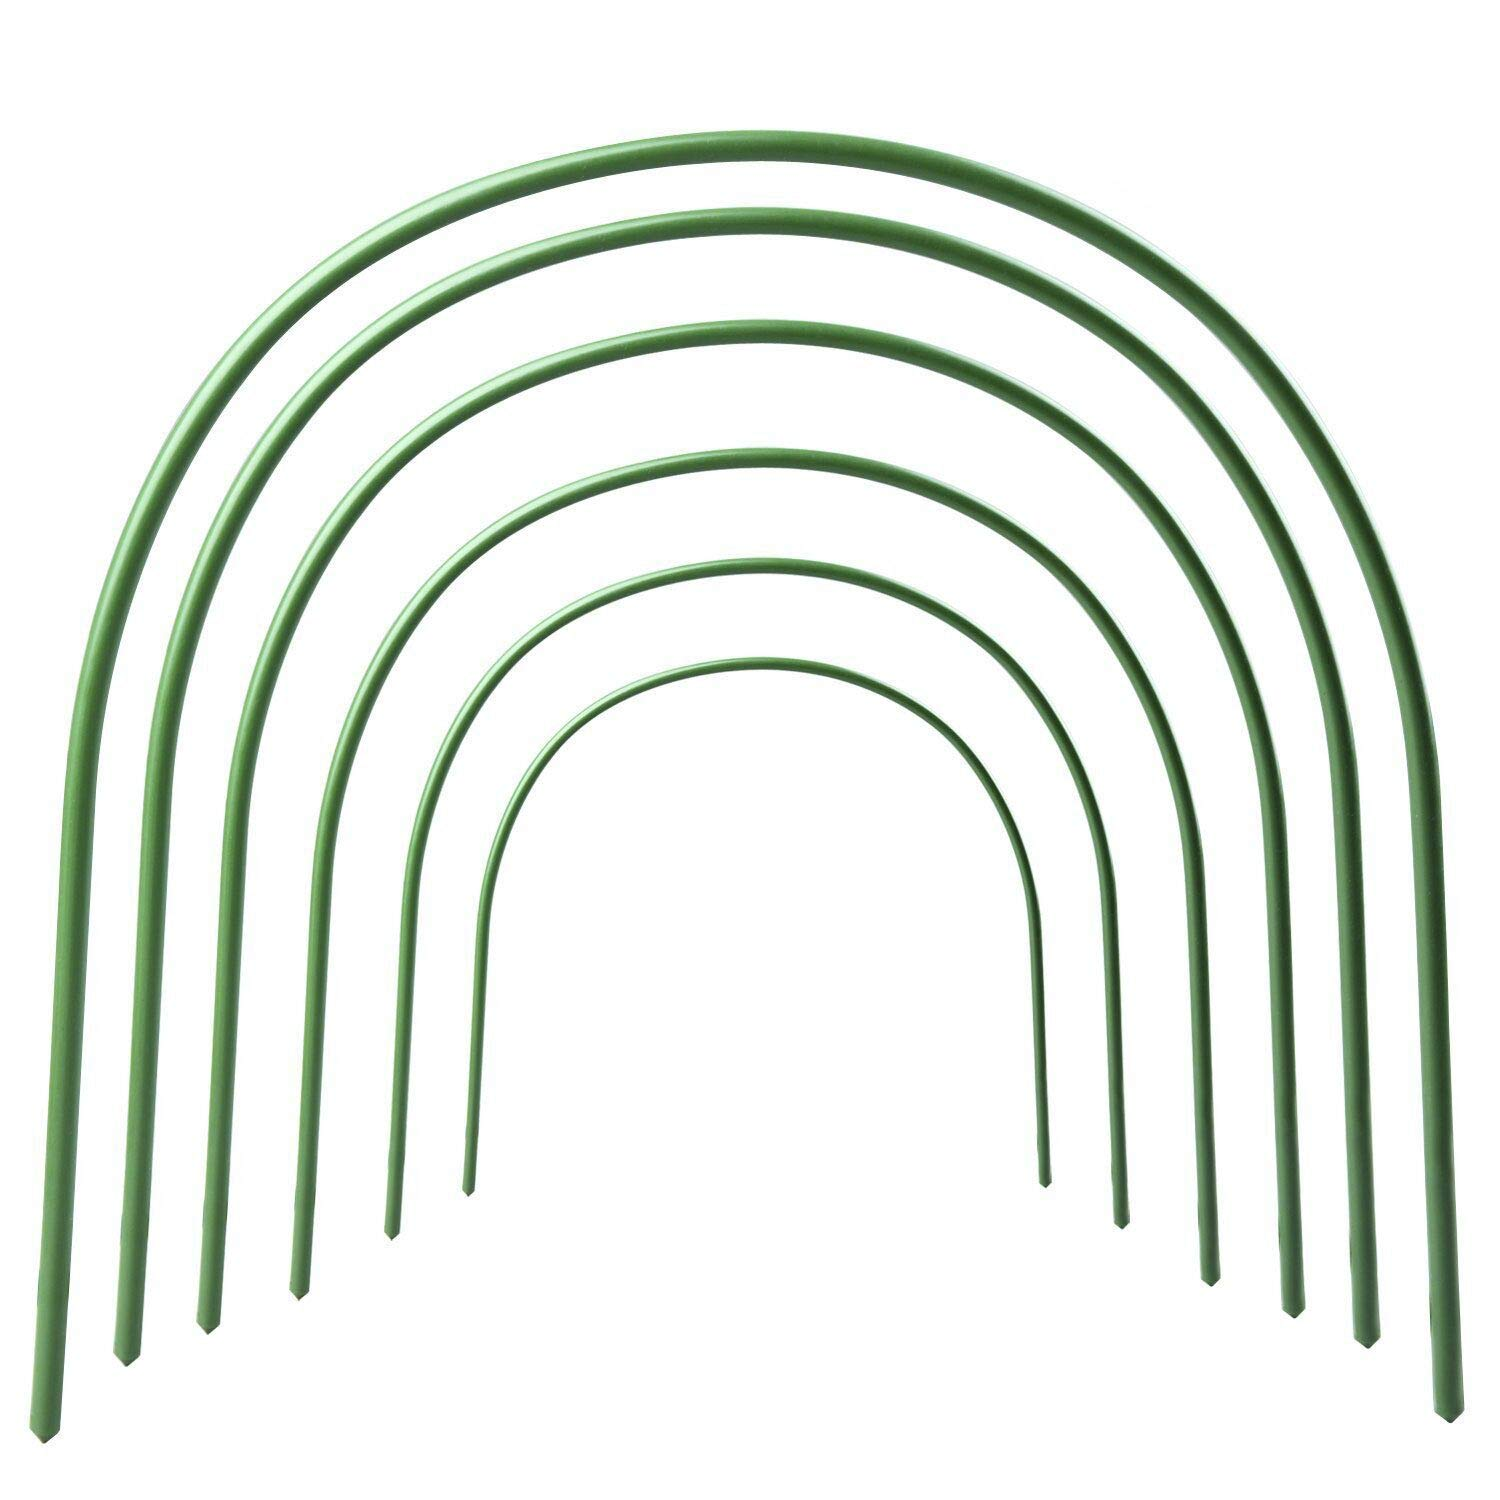 Greenhouse Hoops Rust-free Grow Tunnel 4ft Long Steel with Plastic Coated Support Hoops for Greenhouse, 6 Pack by RTWAY